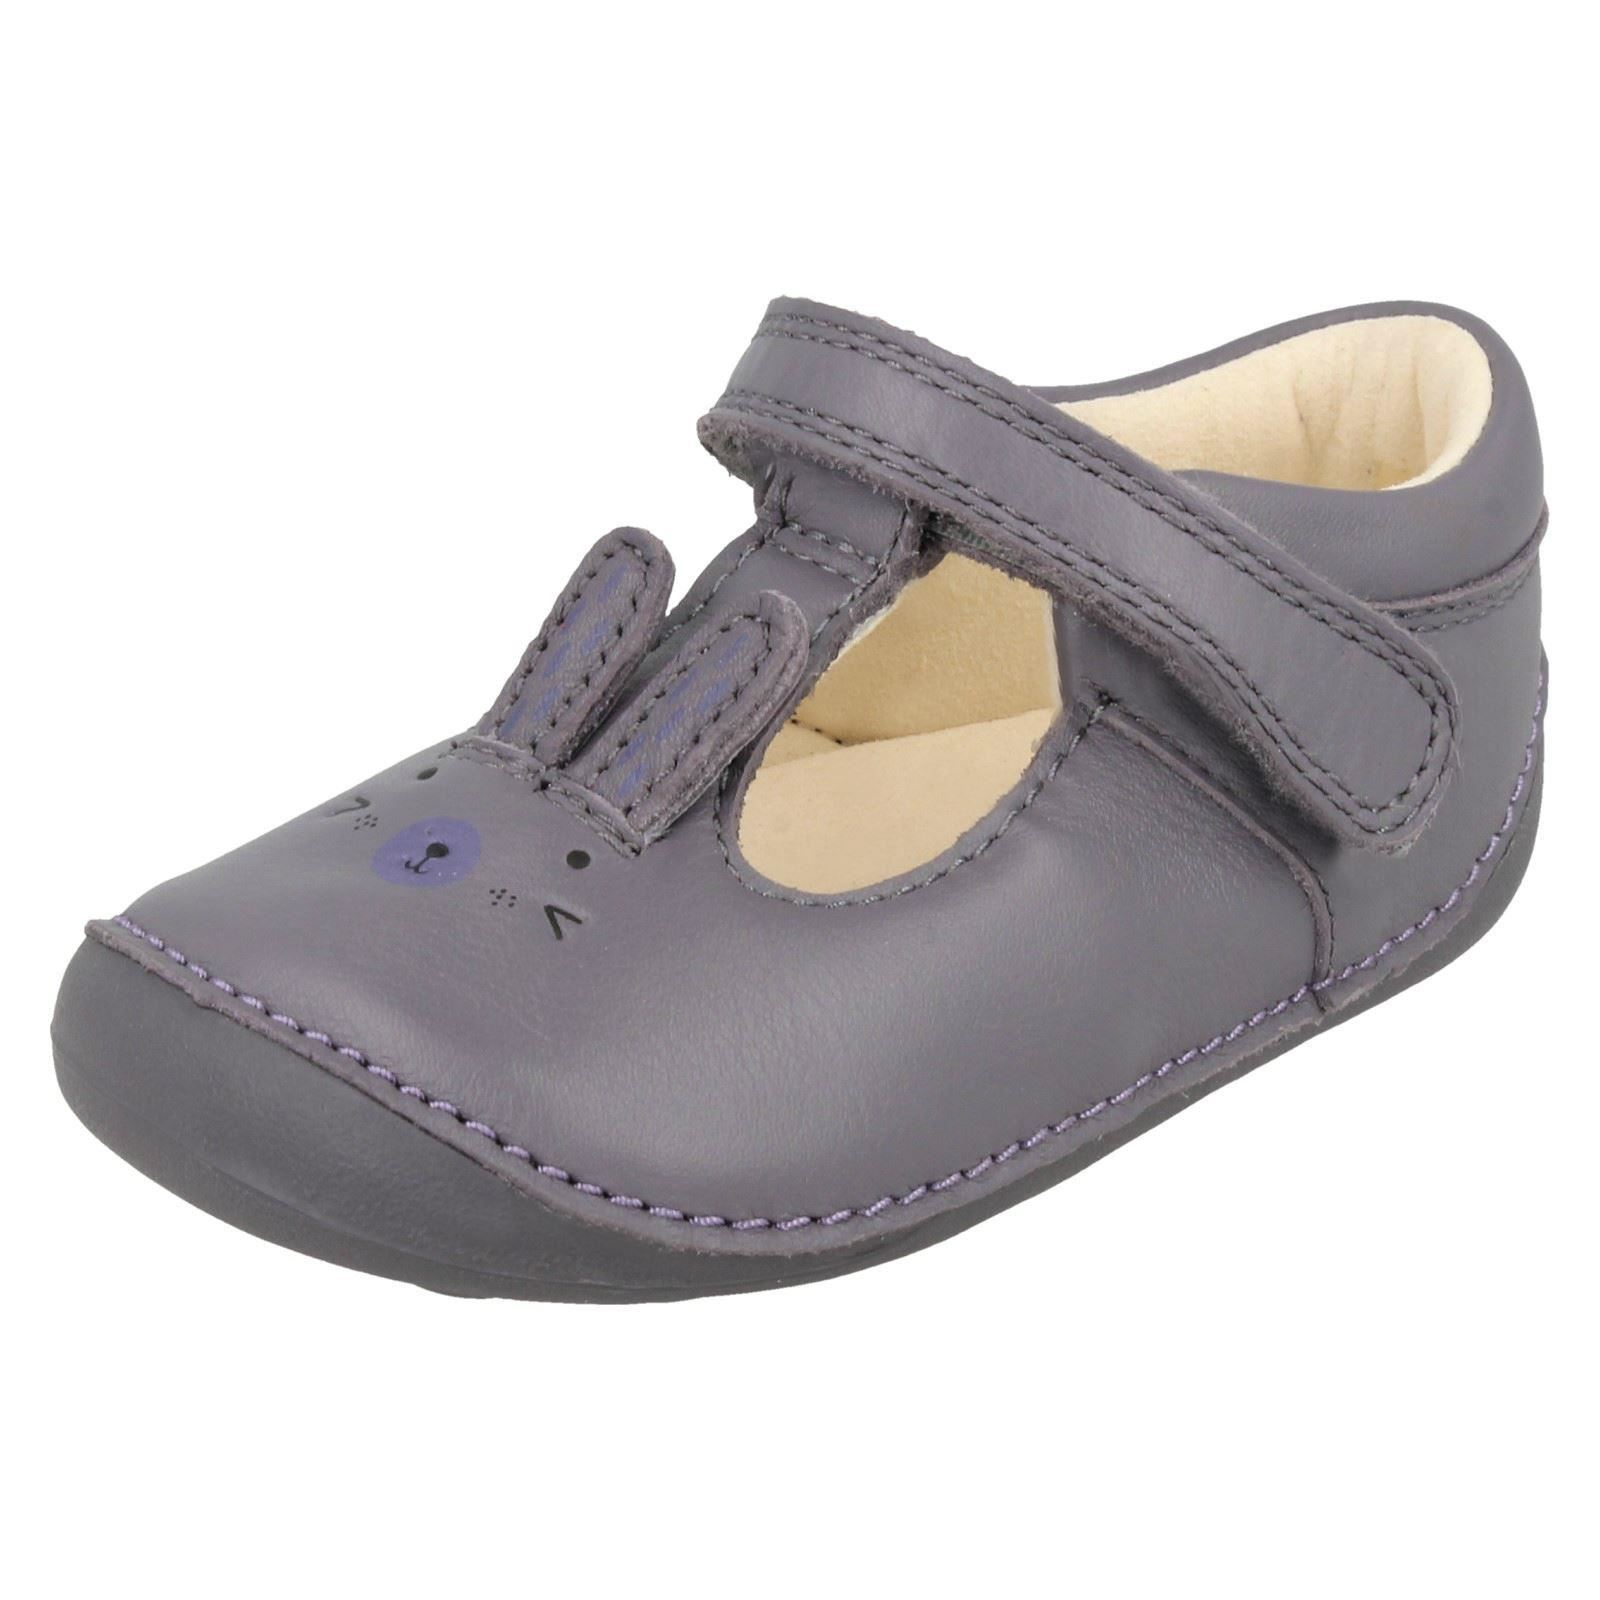 Girls Clarks First Shoes With Rabbit